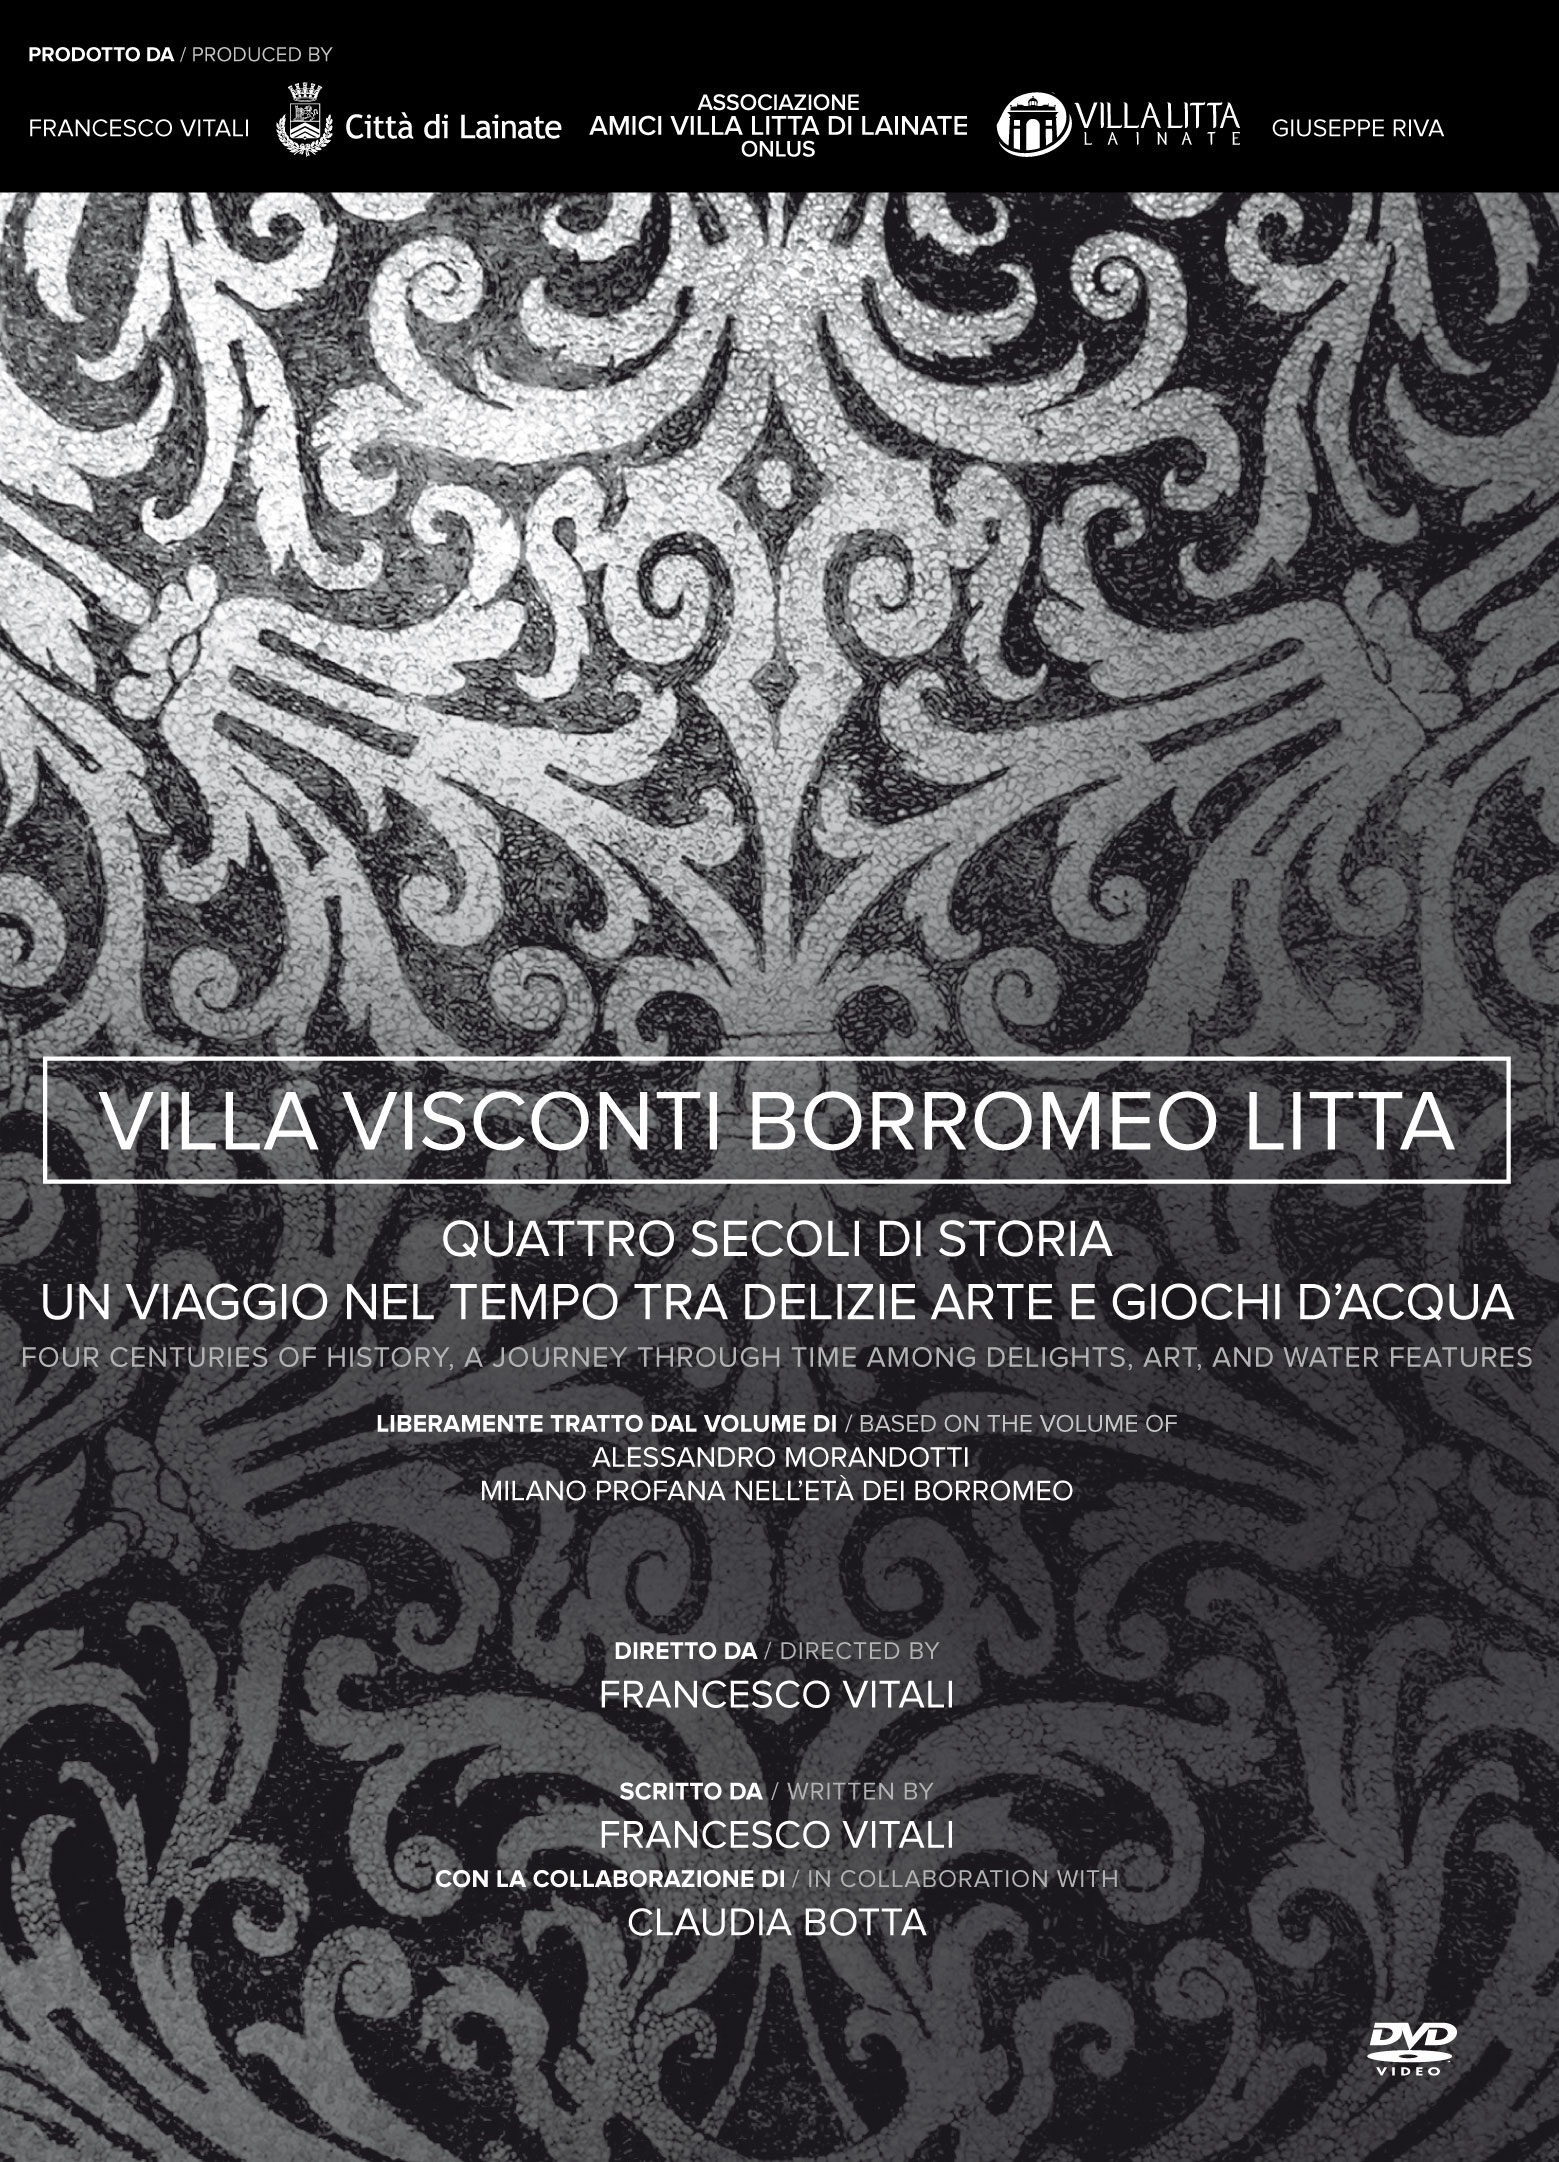 DVD Villa Visconti Borromeo Litta il film 2018